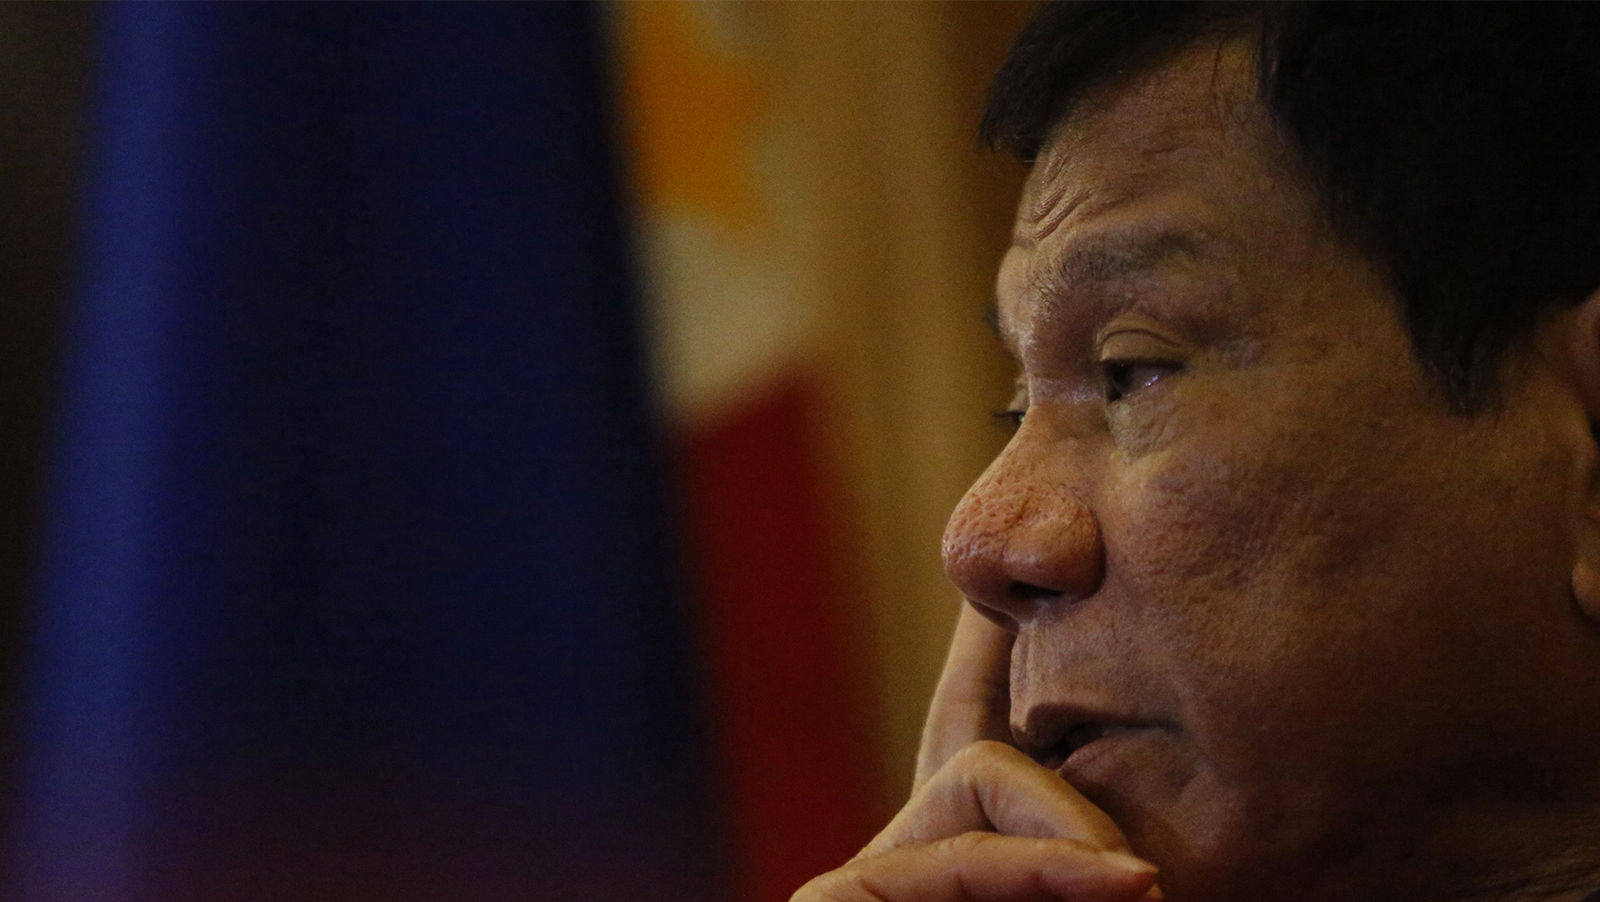 Philippines president suddenly softens stance on gambling